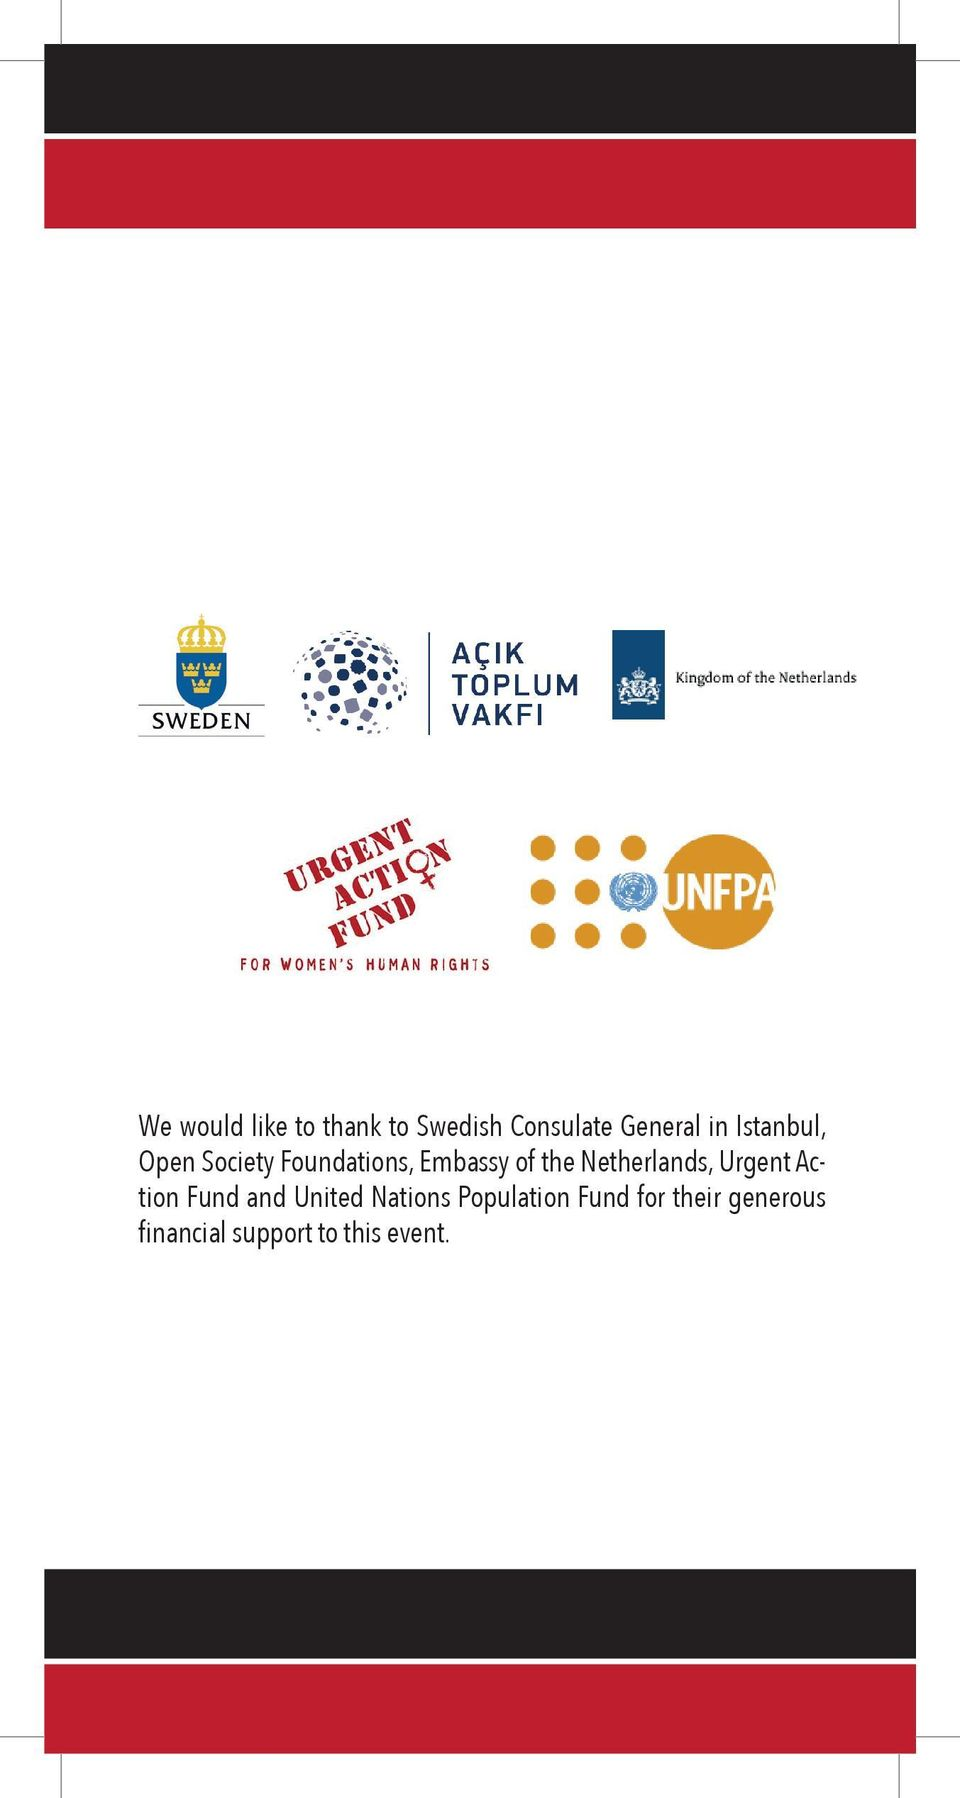 Netherlands, Urgent Action Fund and United Nations